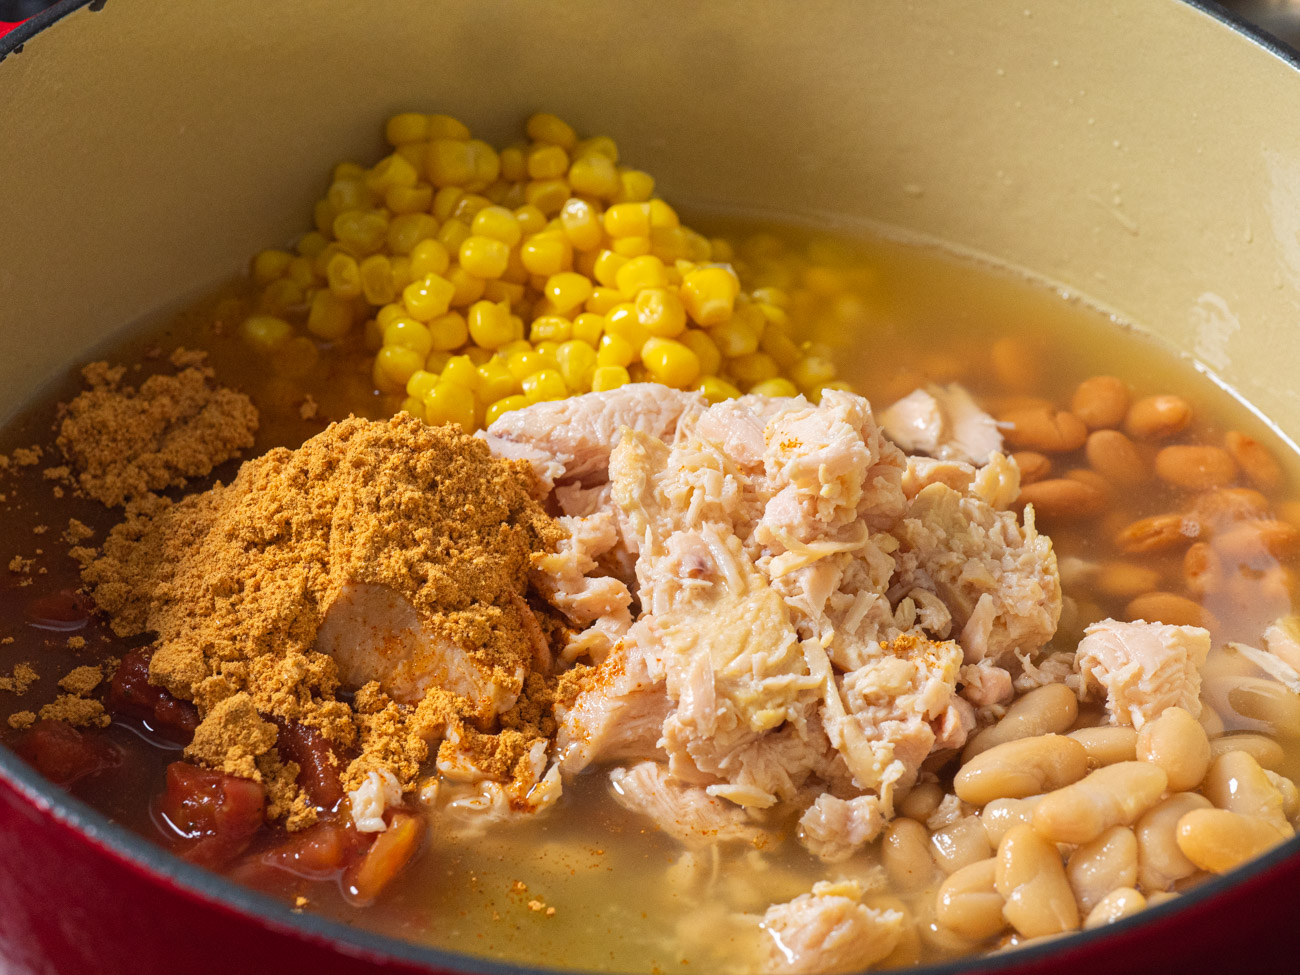 Once canned goods have been drained (and rinsed in the case of the beans) combine all ingredients into a large stock pot set on medium-high.